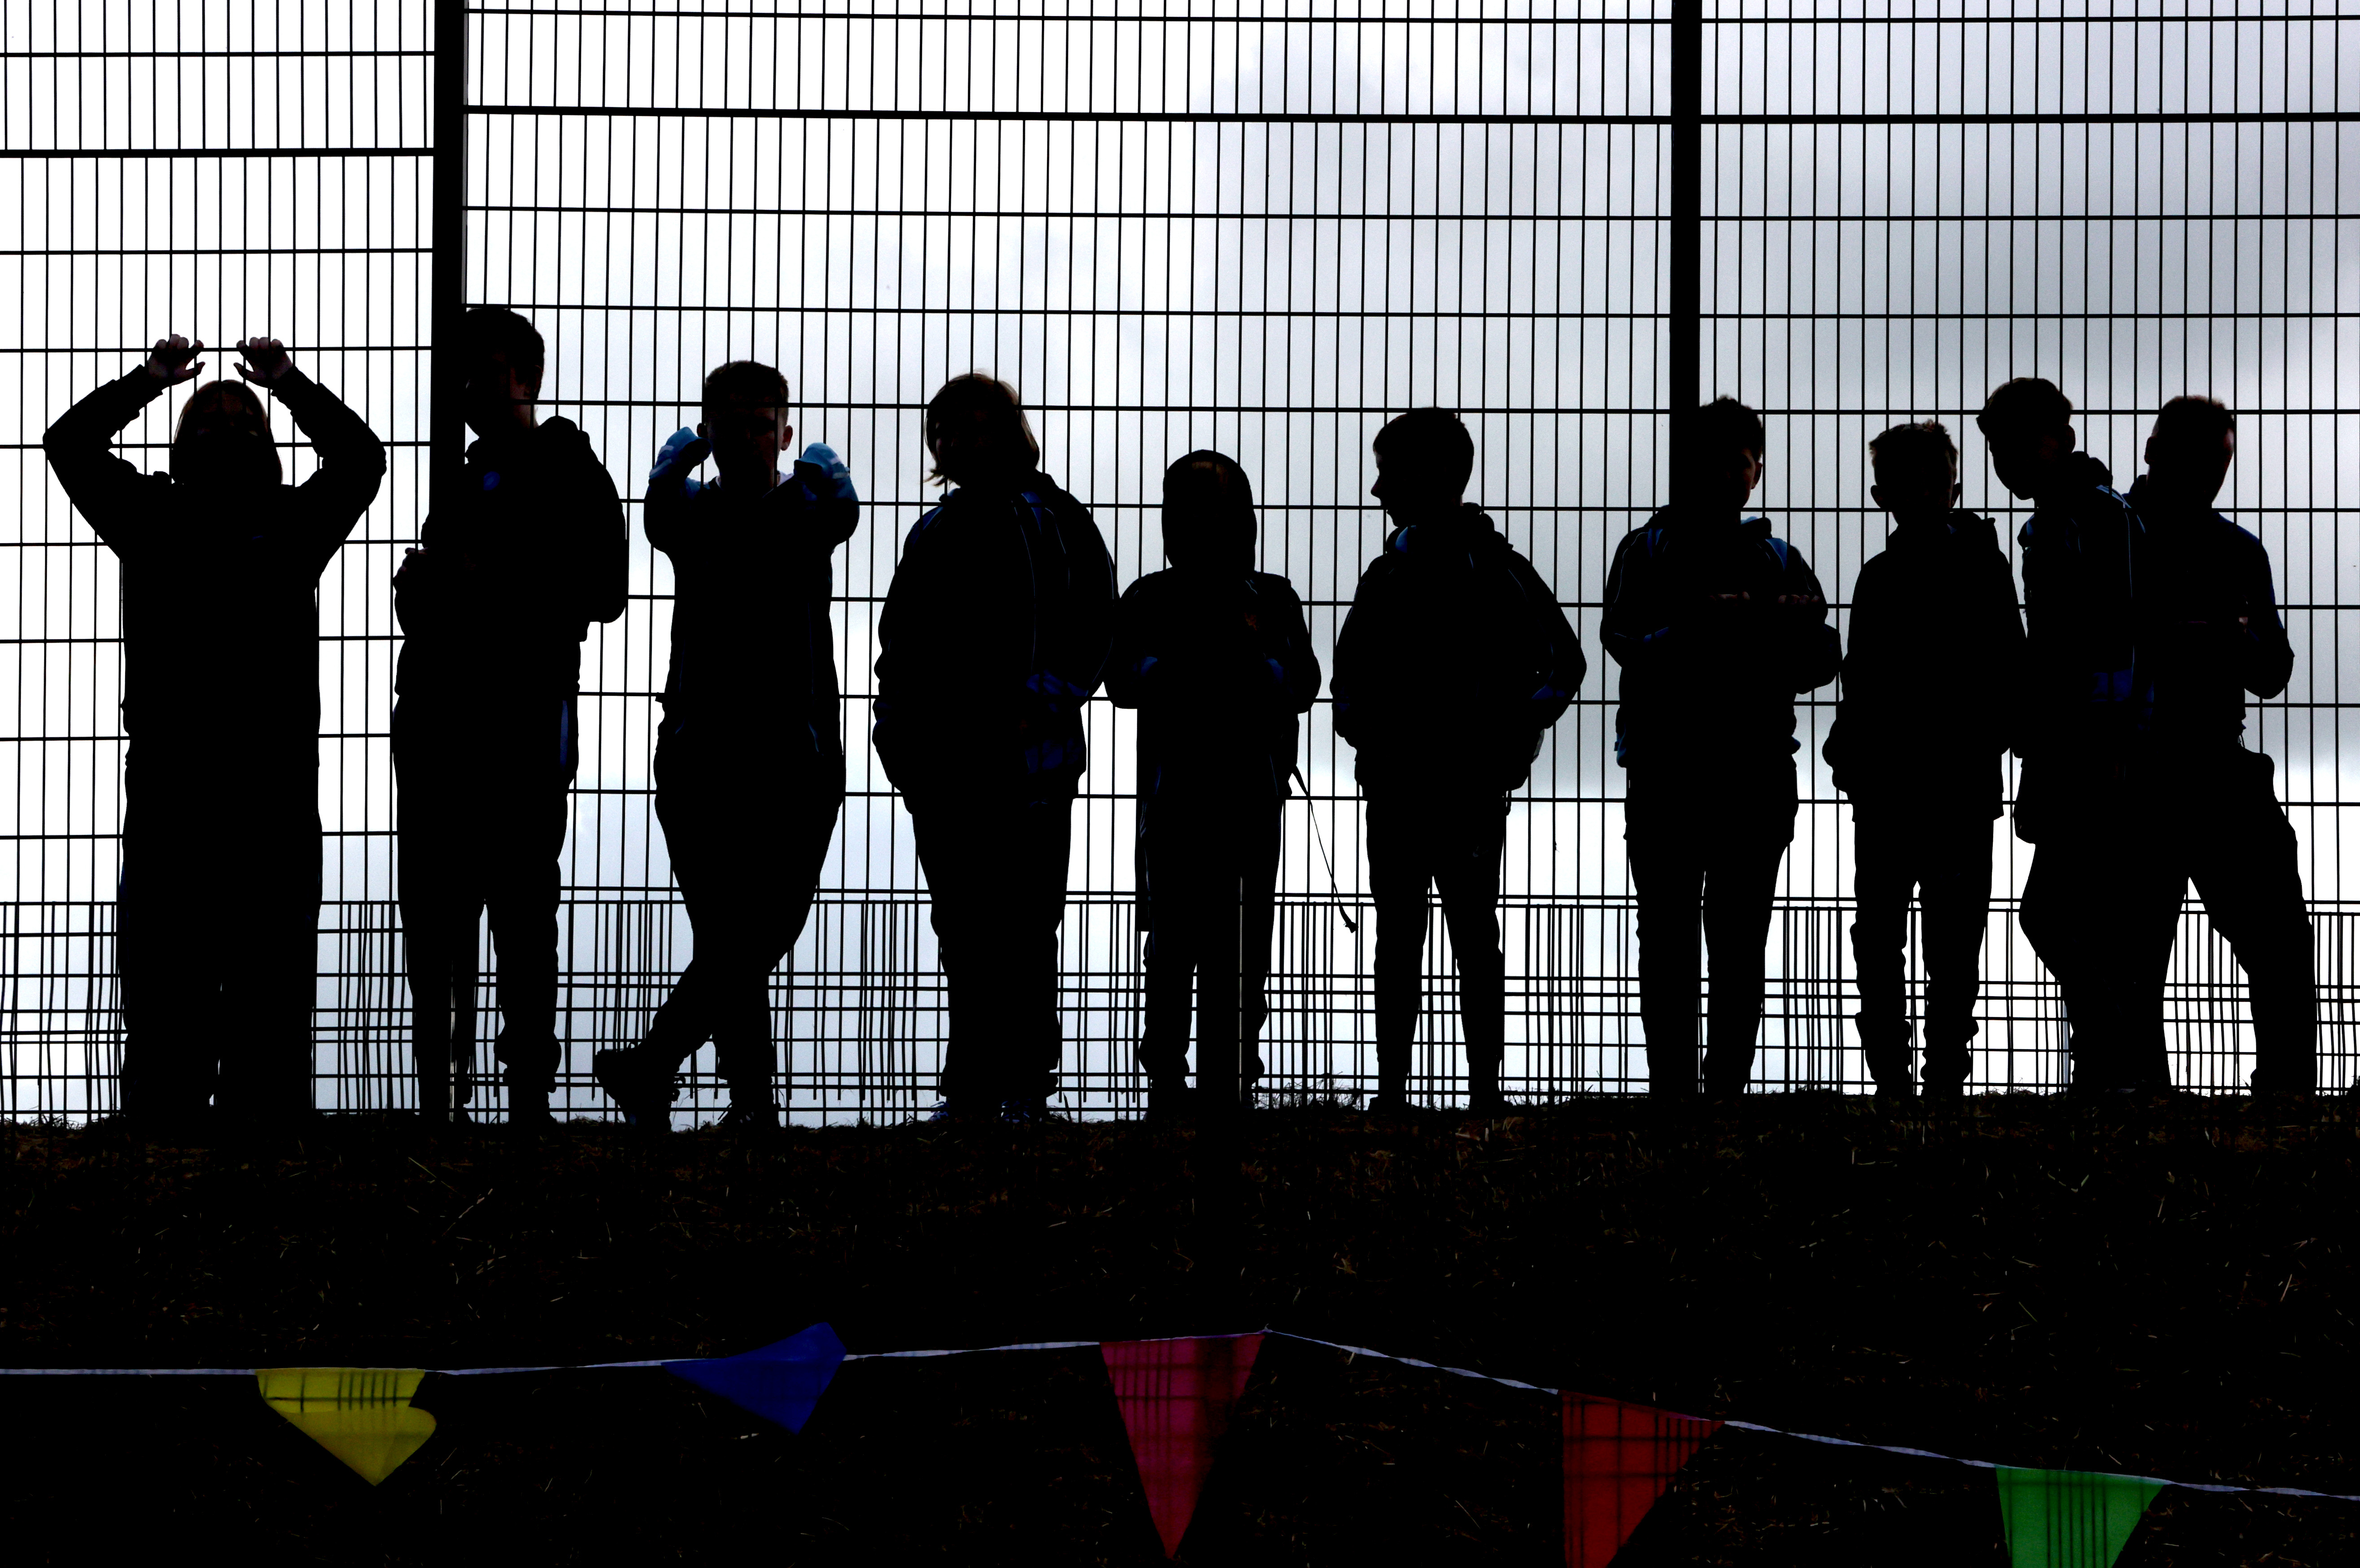 <p>School children wait for the arrival of the Prince of Wales and the Duchess of Cornwall to Bangor Market where they walked around and meeting stall holders at the open-air market. Picture date: Wednesday May 19, 2021.</p>